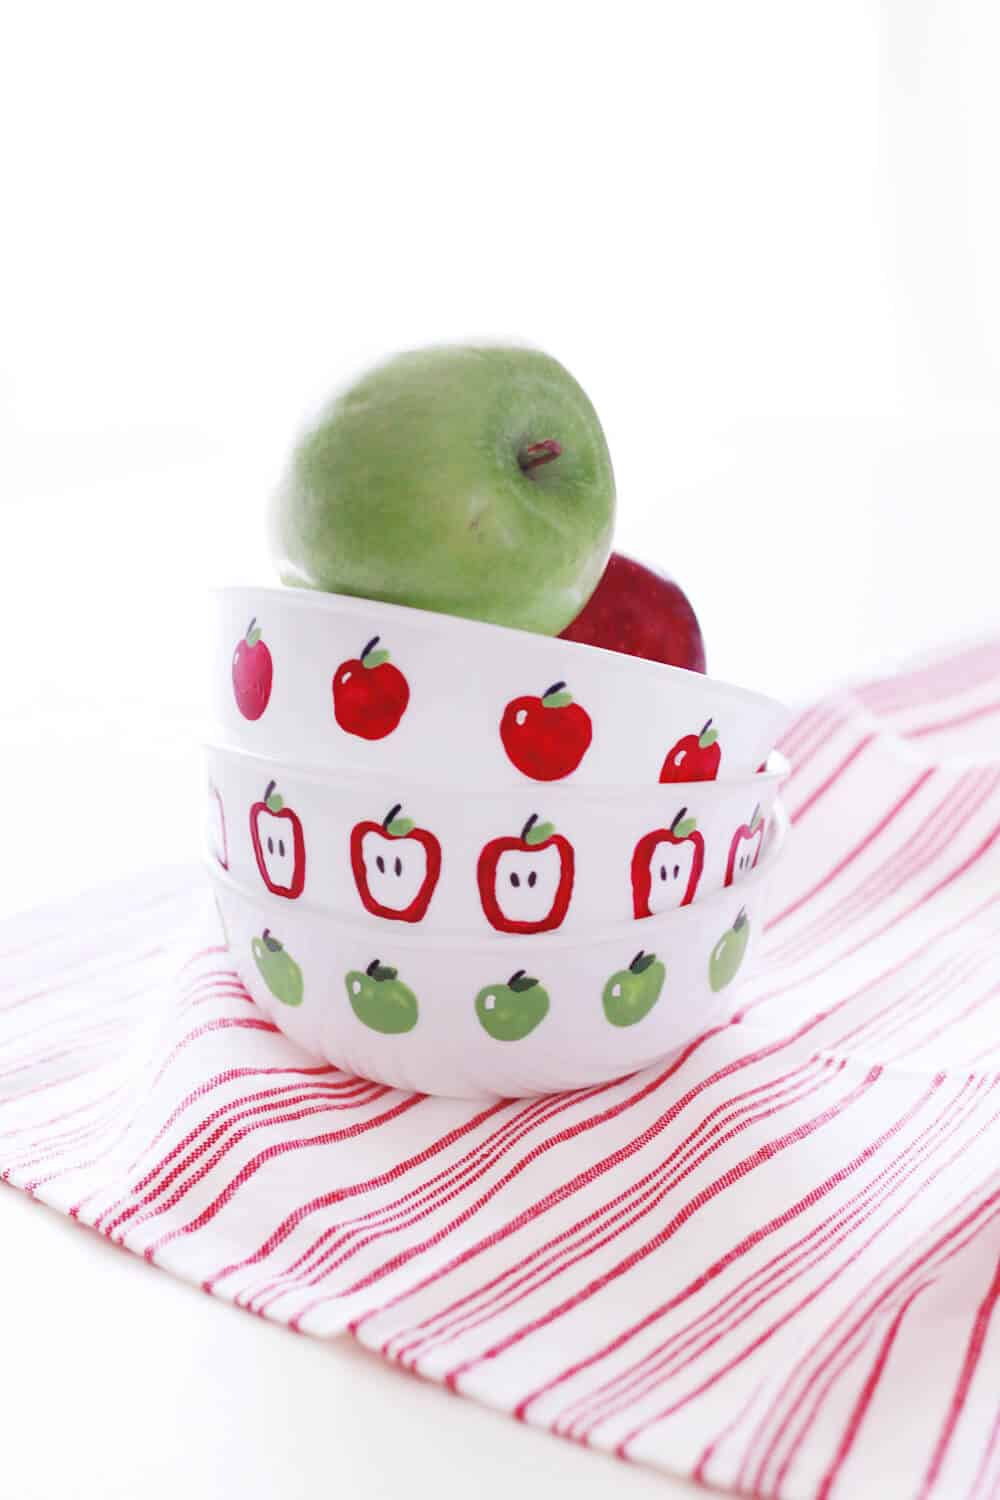 Apple Fingerpaint Bowls... a fun, family friendly DIY to welcome autumn and the new school year!